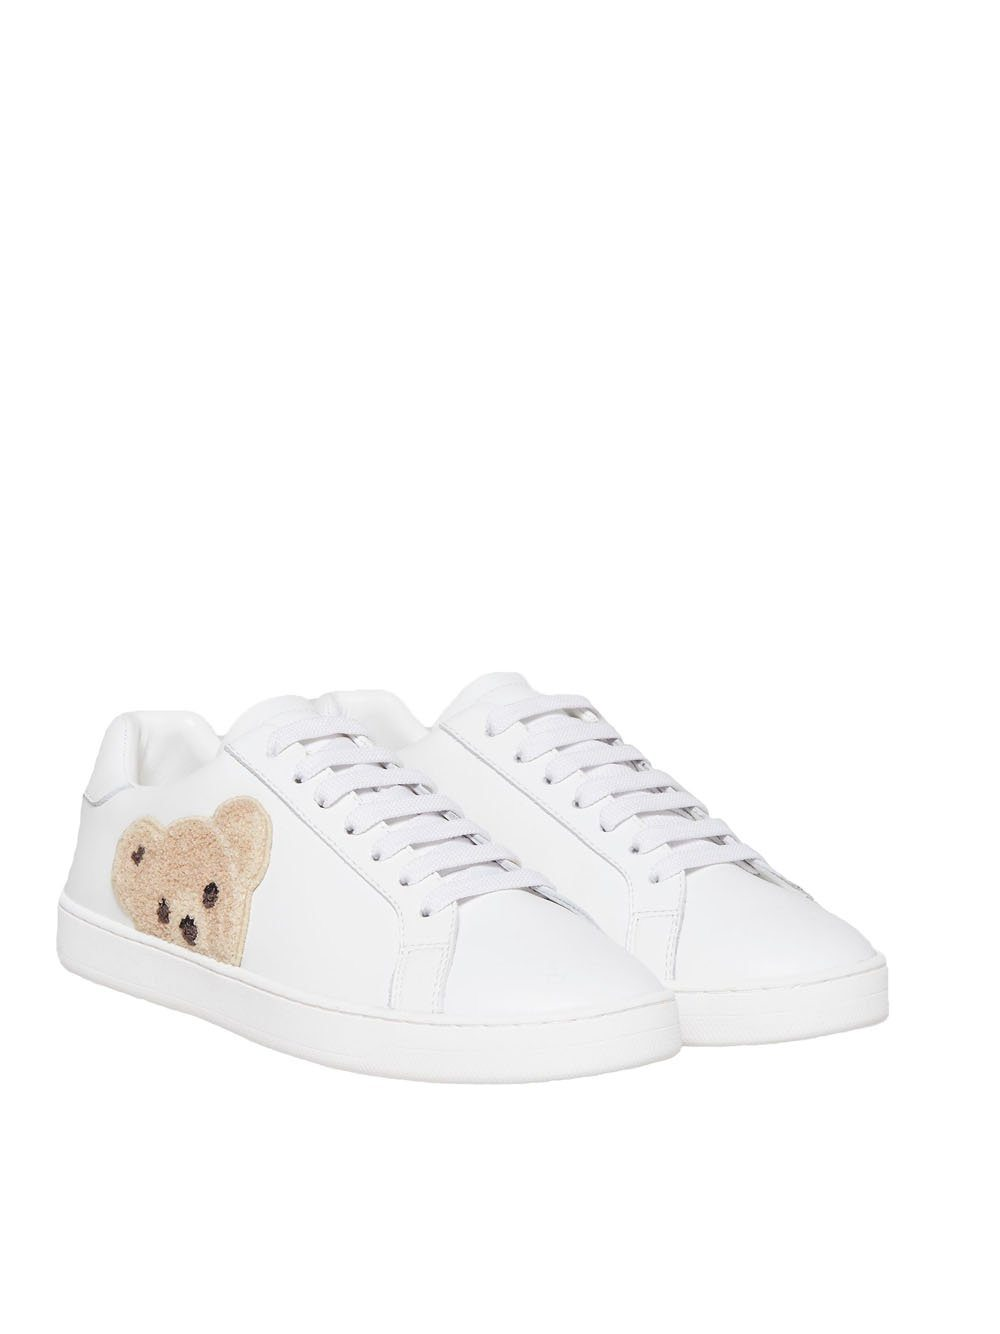 PALM ANGELS Teddy Bear Tennis Sneakers White